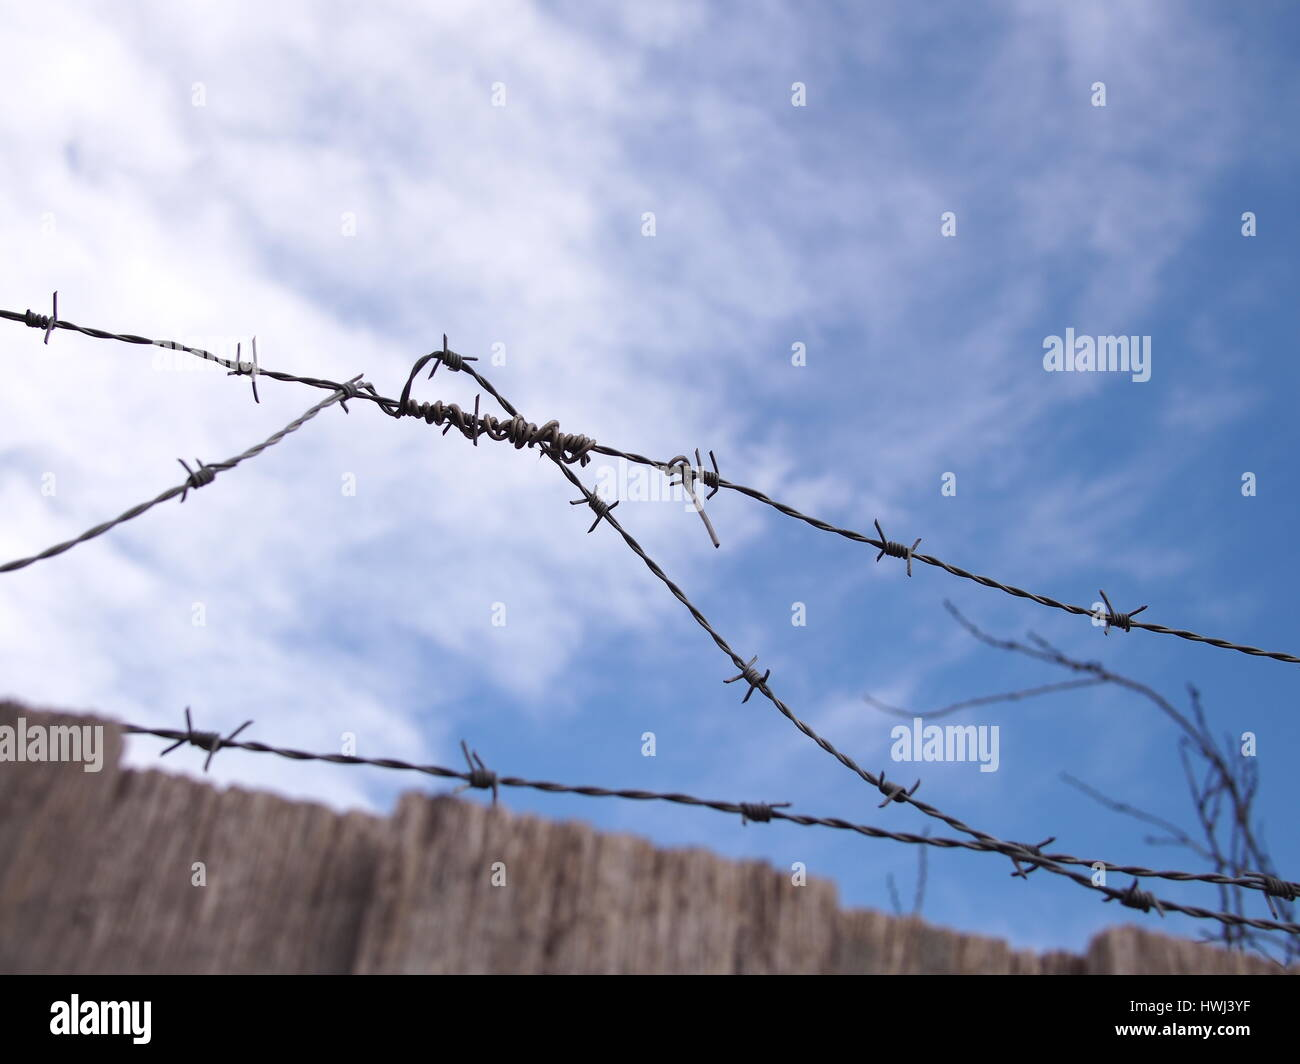 Steel barb wire on a fence under blue sky with clouds, Australia 2016 - Stock Image